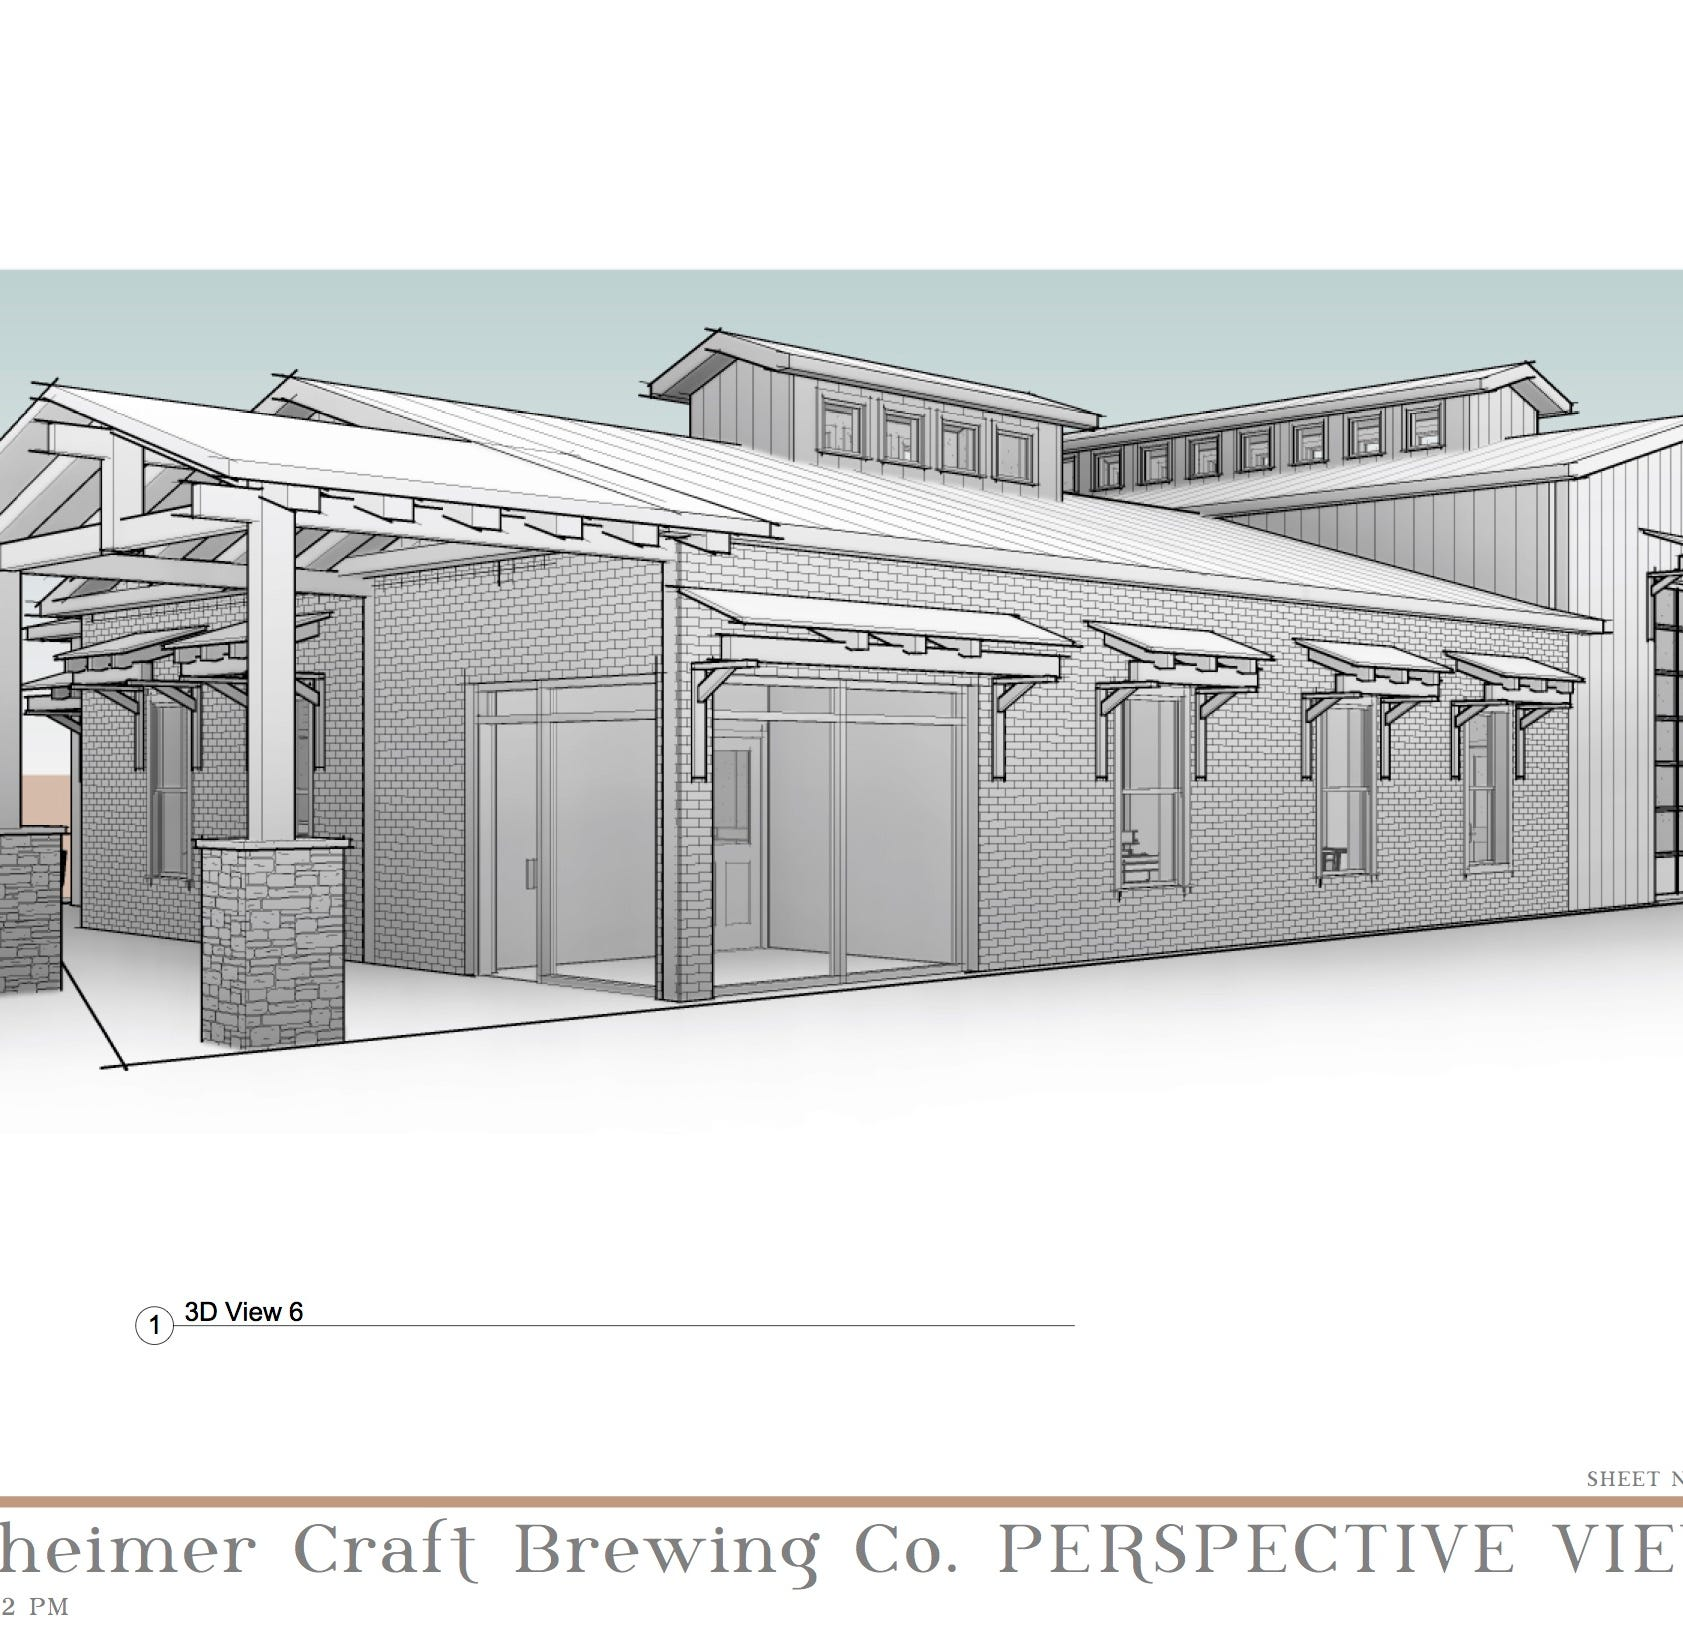 Cayuga County brewery expanding; opening Sodus Bay taproom